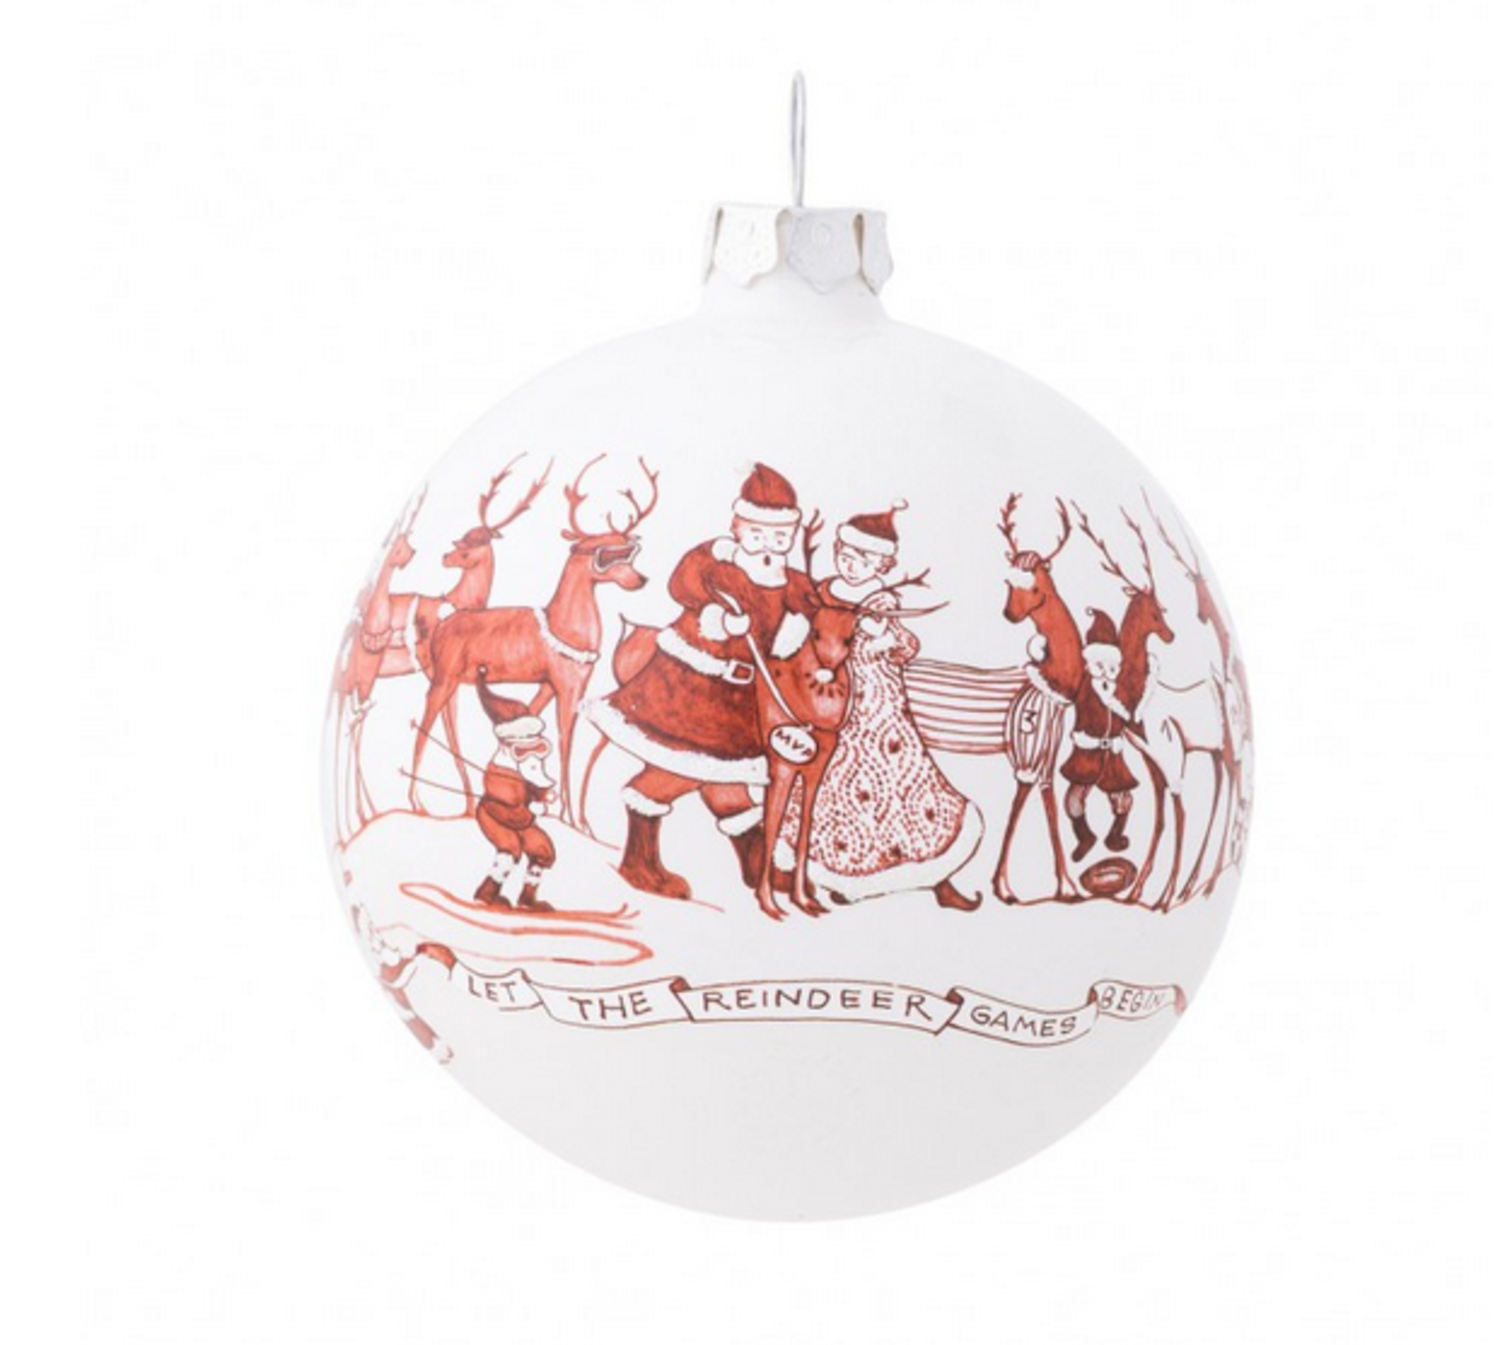 Country Estate Ruby Reindeer Games Ball Glass Ornament Rags And Riches Lifestyle Boutique